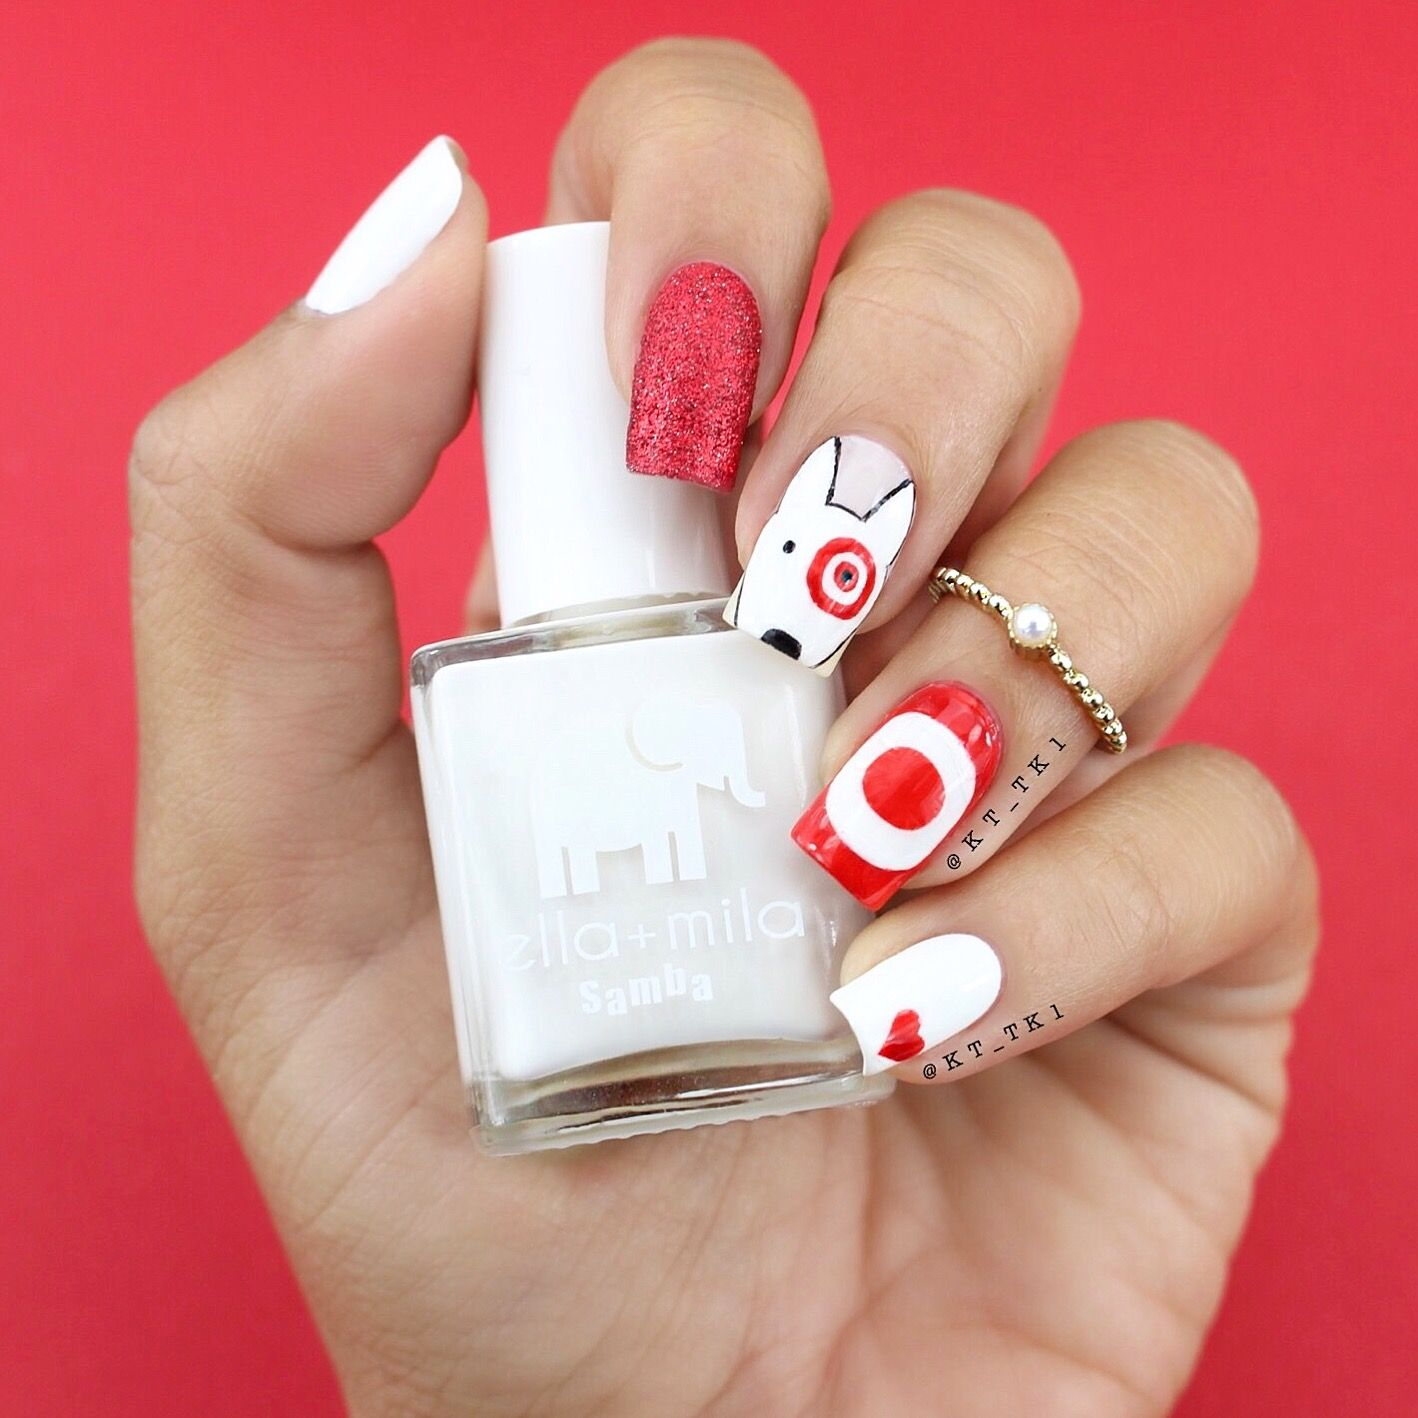 Target Nails Unhas Forever21 Nailsofinstagram Nailsoftheday Nailitmag Hubabeau Gel Manicure Get Nails Beautiful Nail Designs